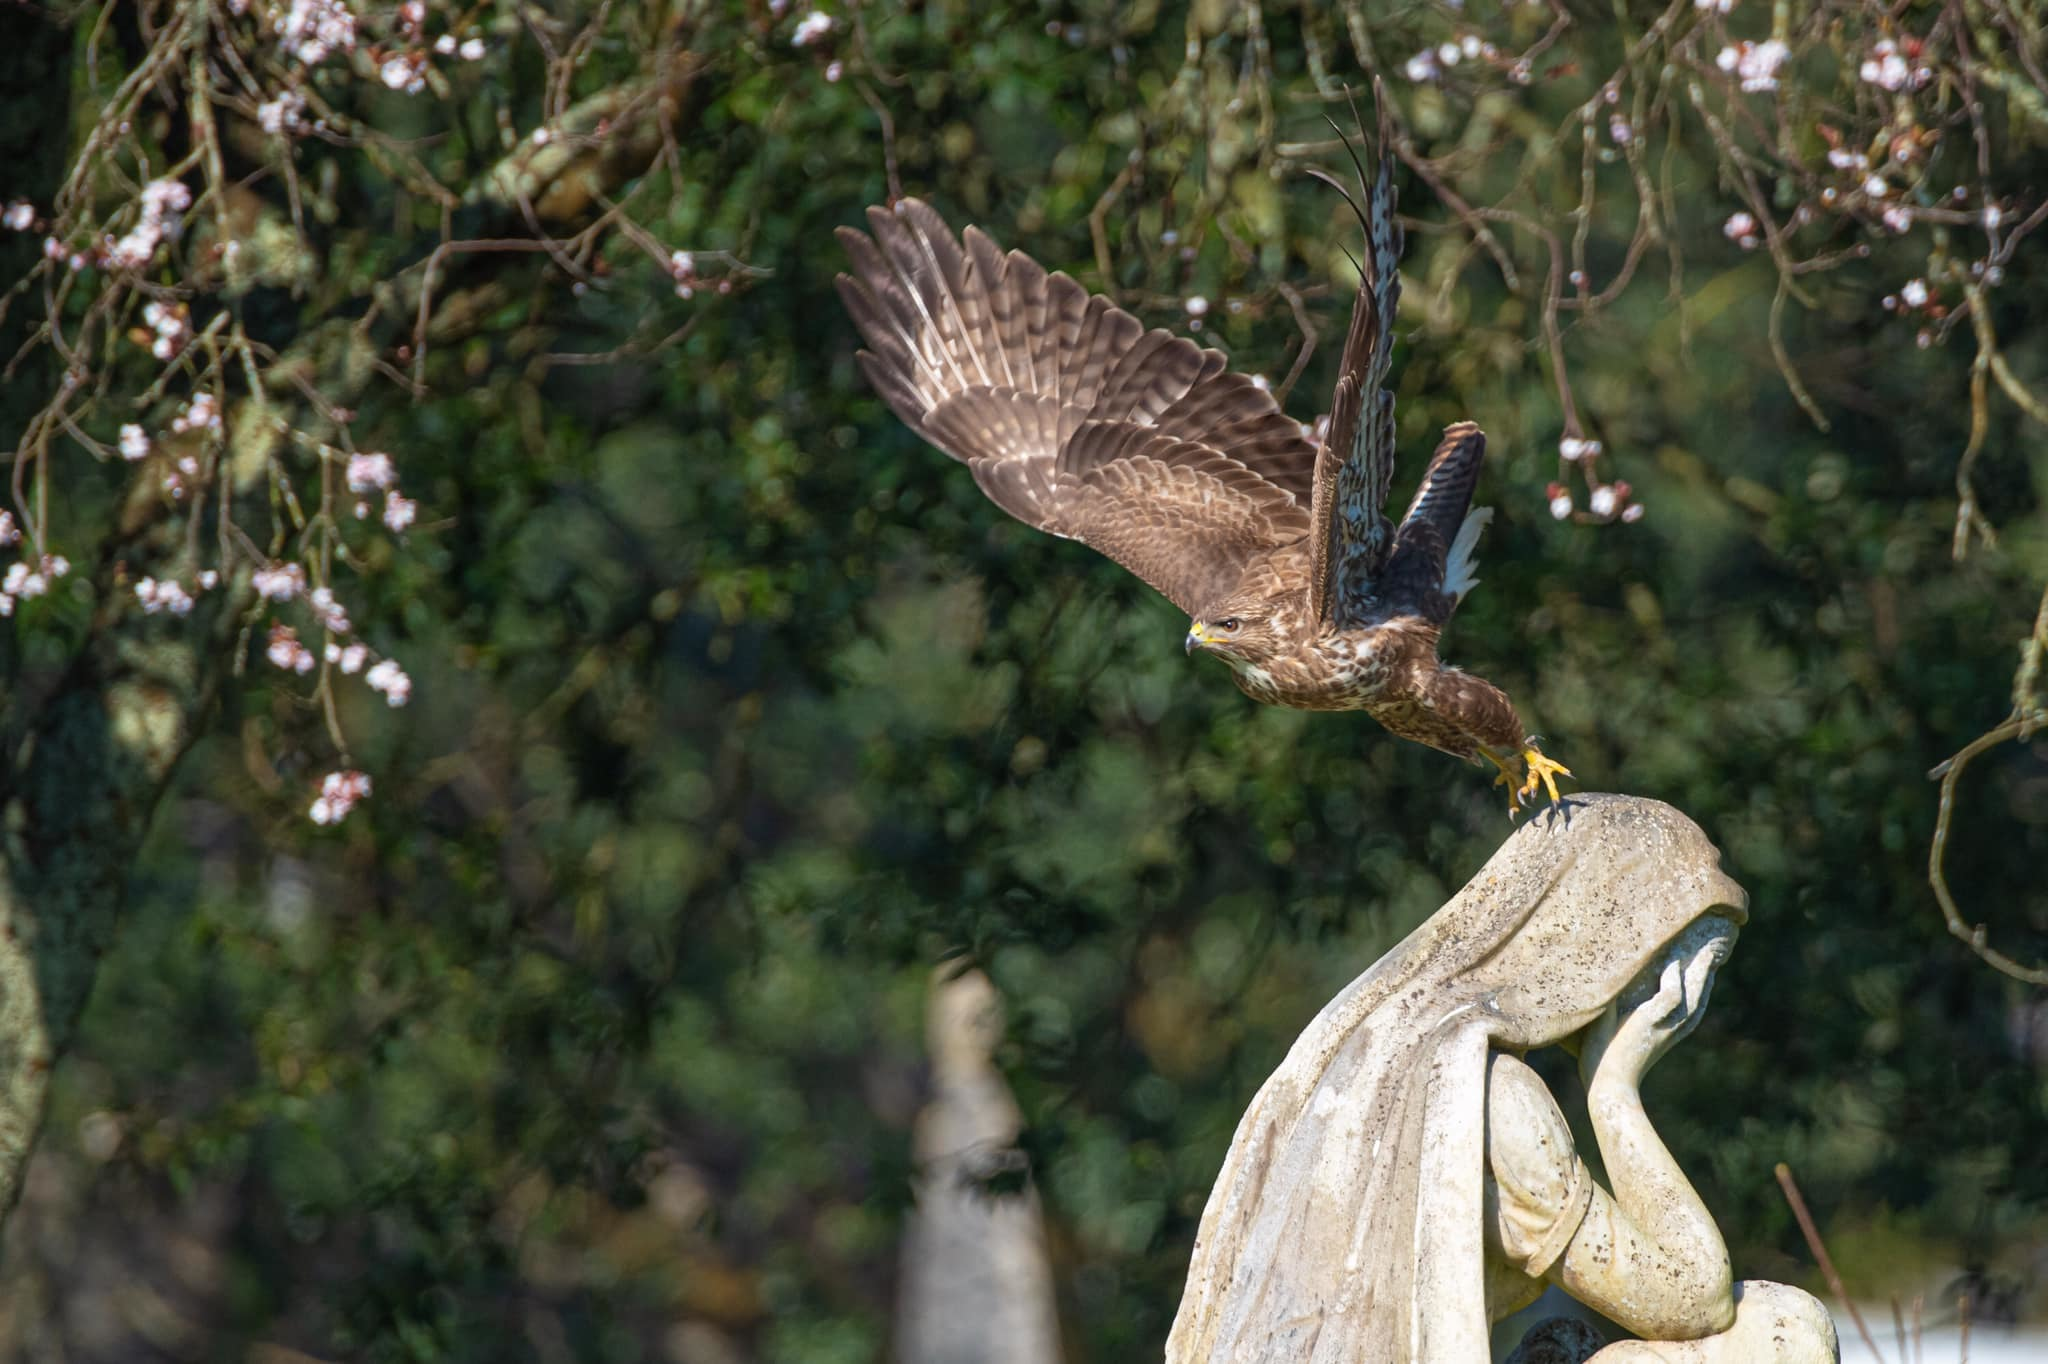 Cemetery buzzard, by Steve Lampshire